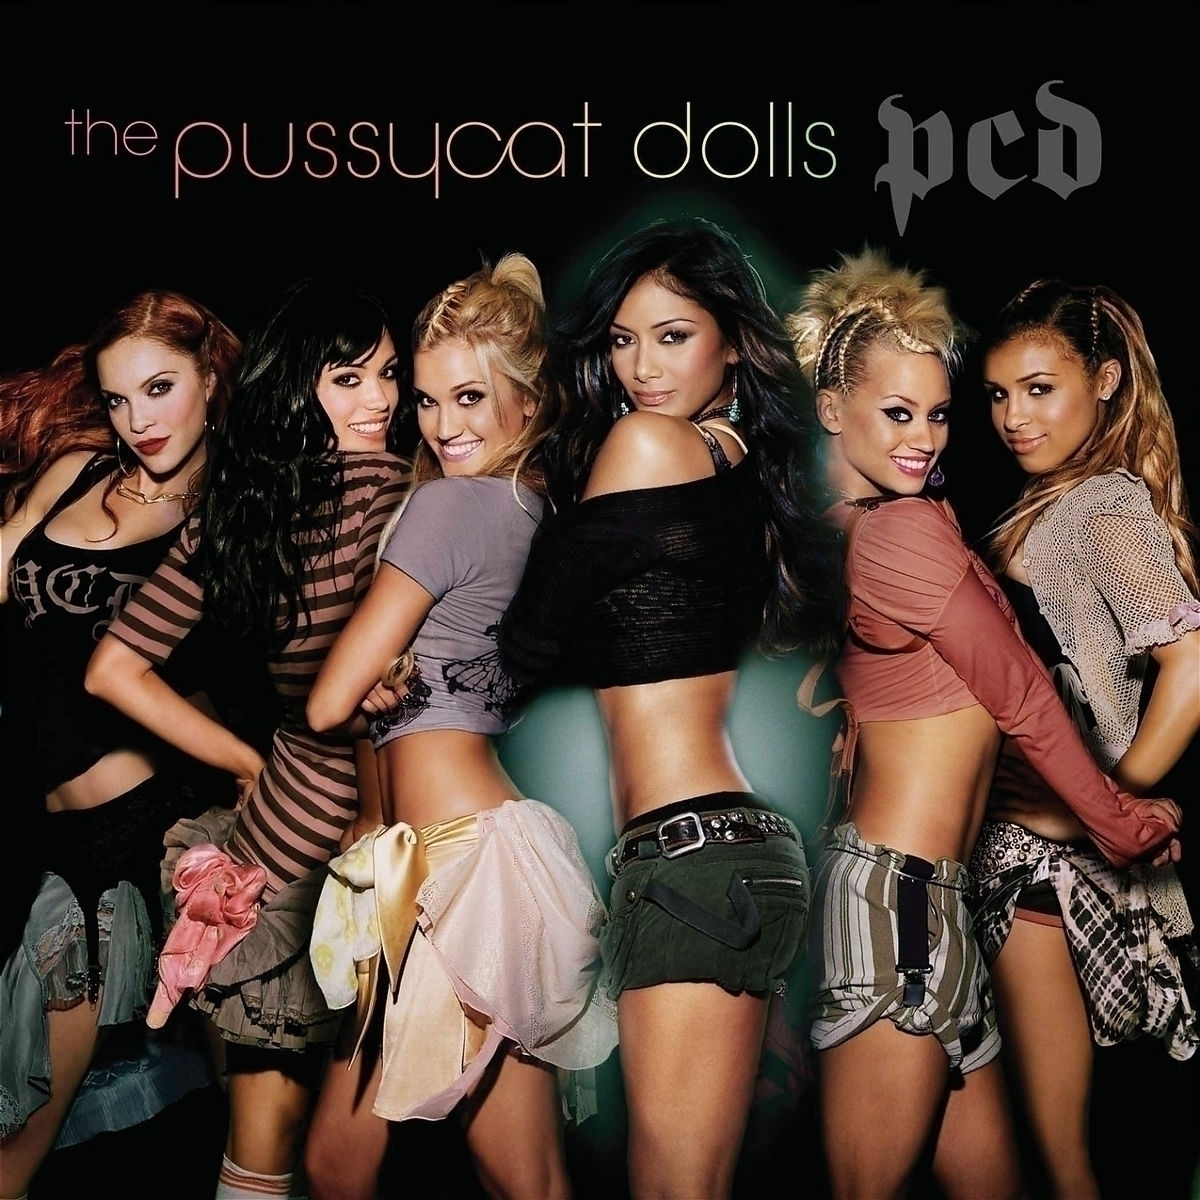 Pussycat Dolls%252BPCD Anonymous1: Where can i find the rest of the nude cosplay?